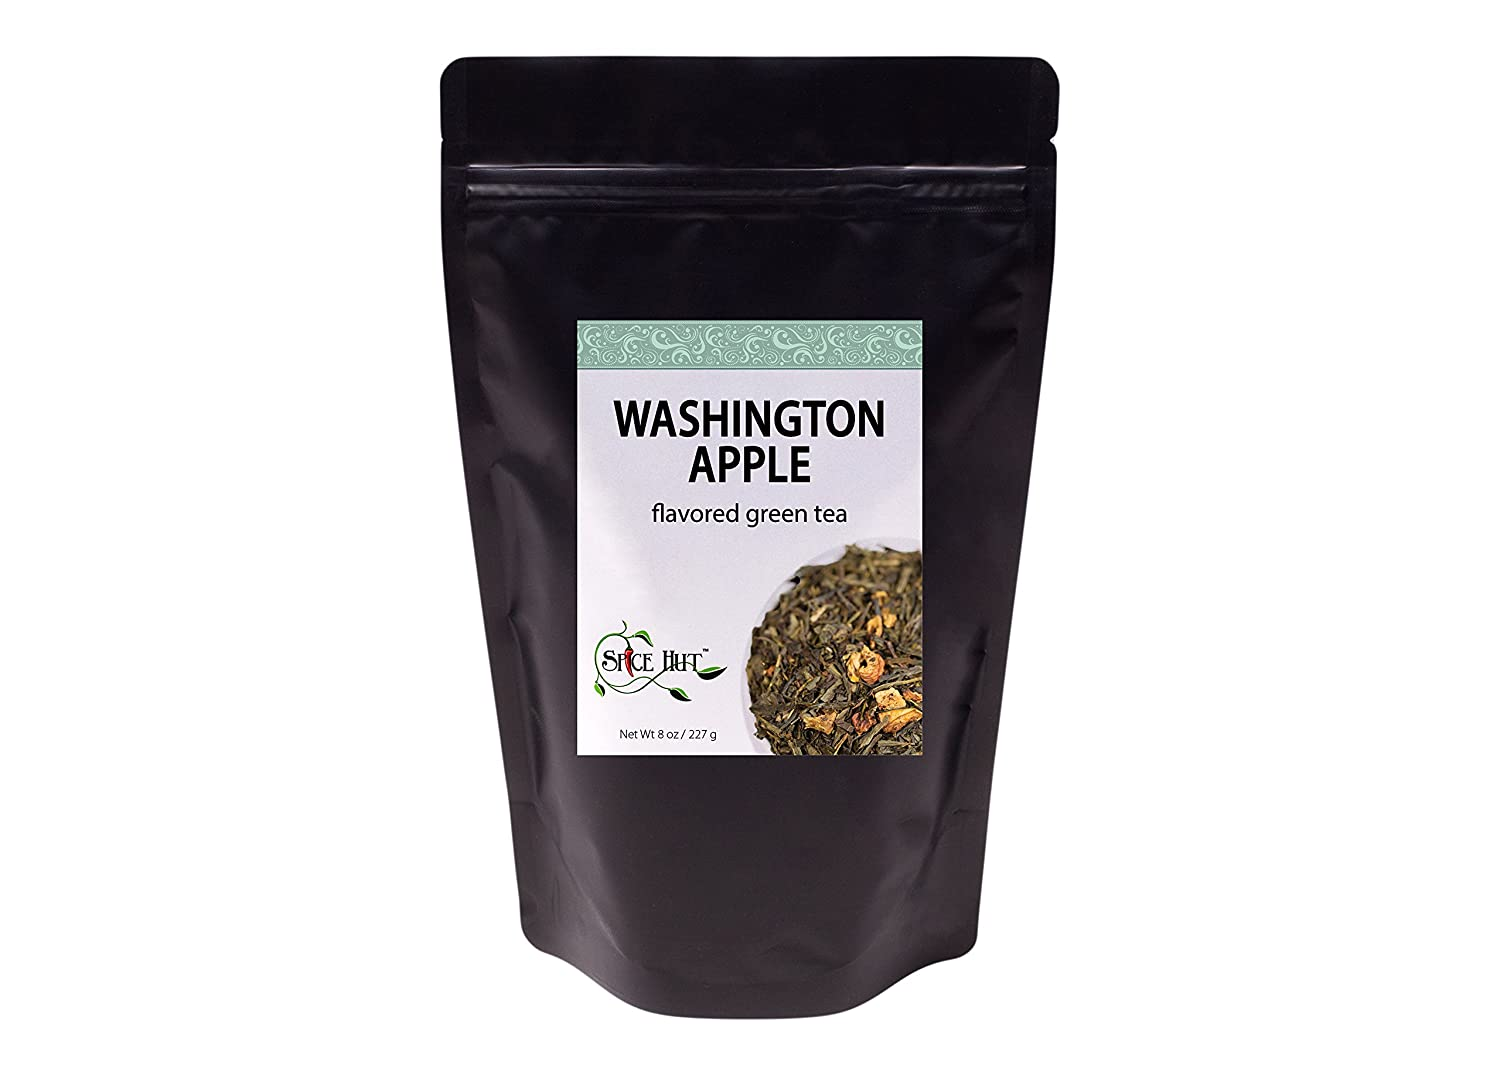 Washington Green Apple Loose Leaf Flavored Green Tea, The First Sip of Tea, 8 ounce bag (80-100 servings) The Spice Hut